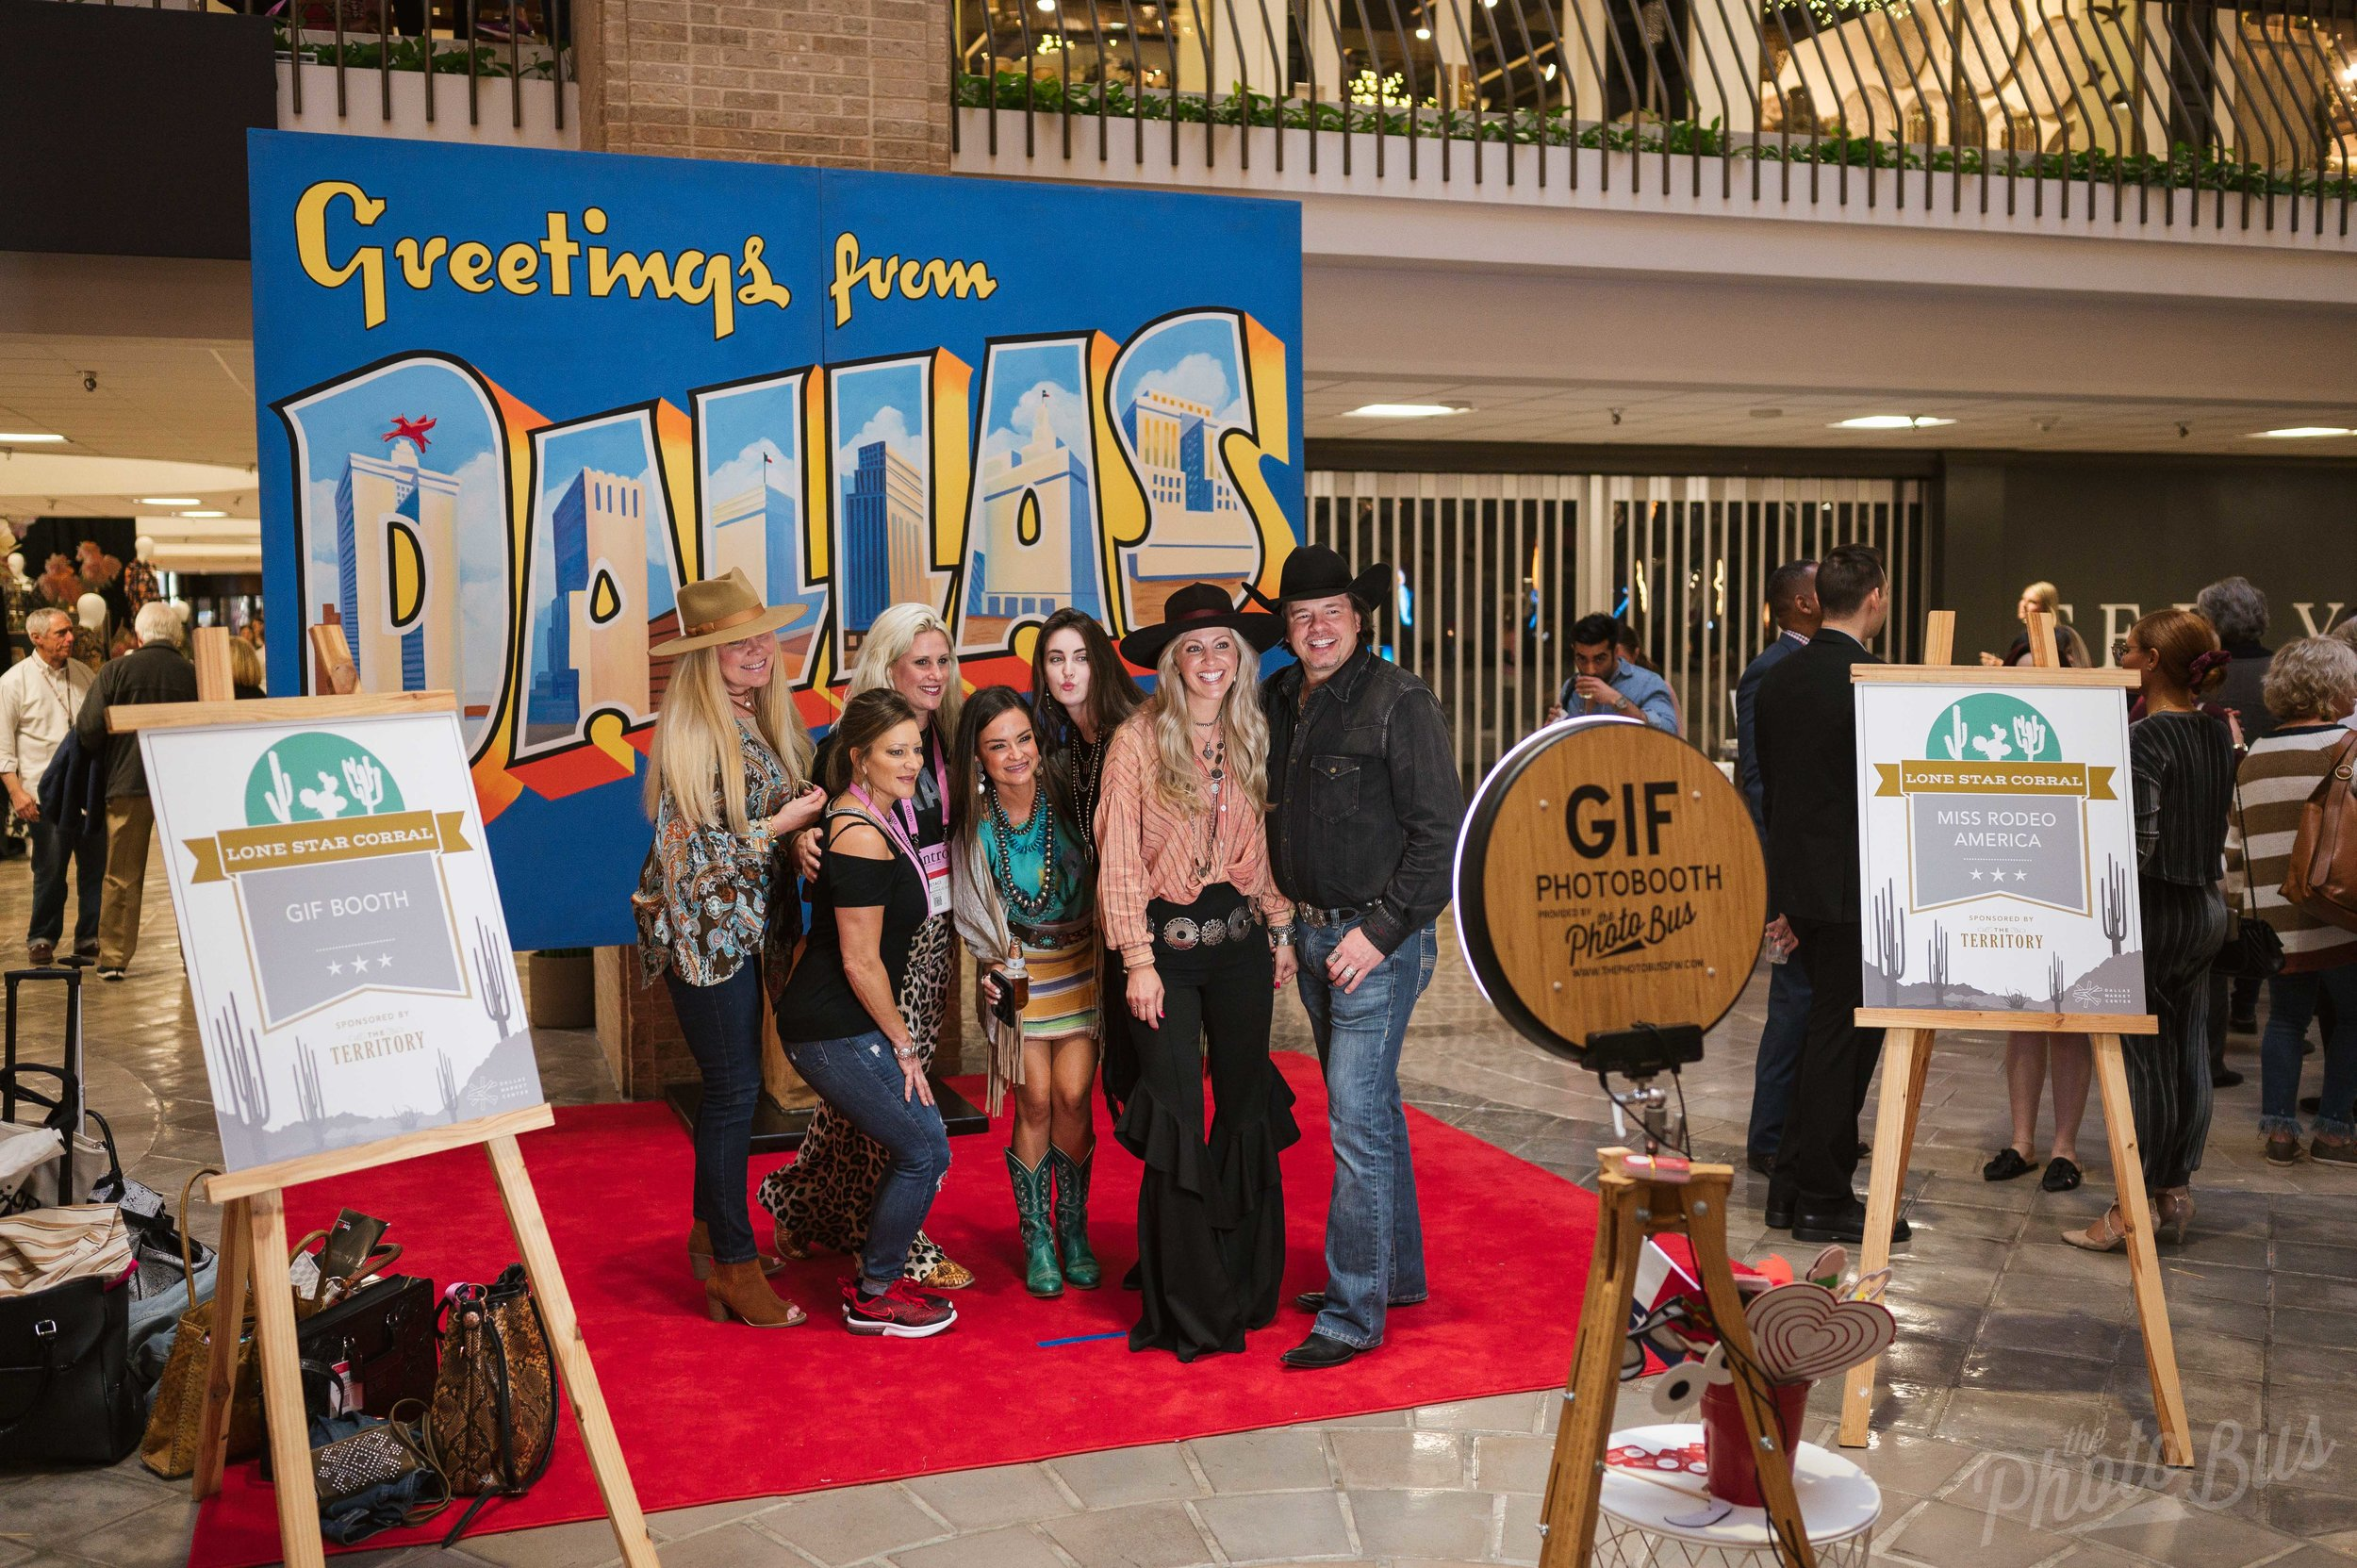 The best photo booth rental in Dallas. The Photo Bus DFW GIF Booth is a social media photo booth.